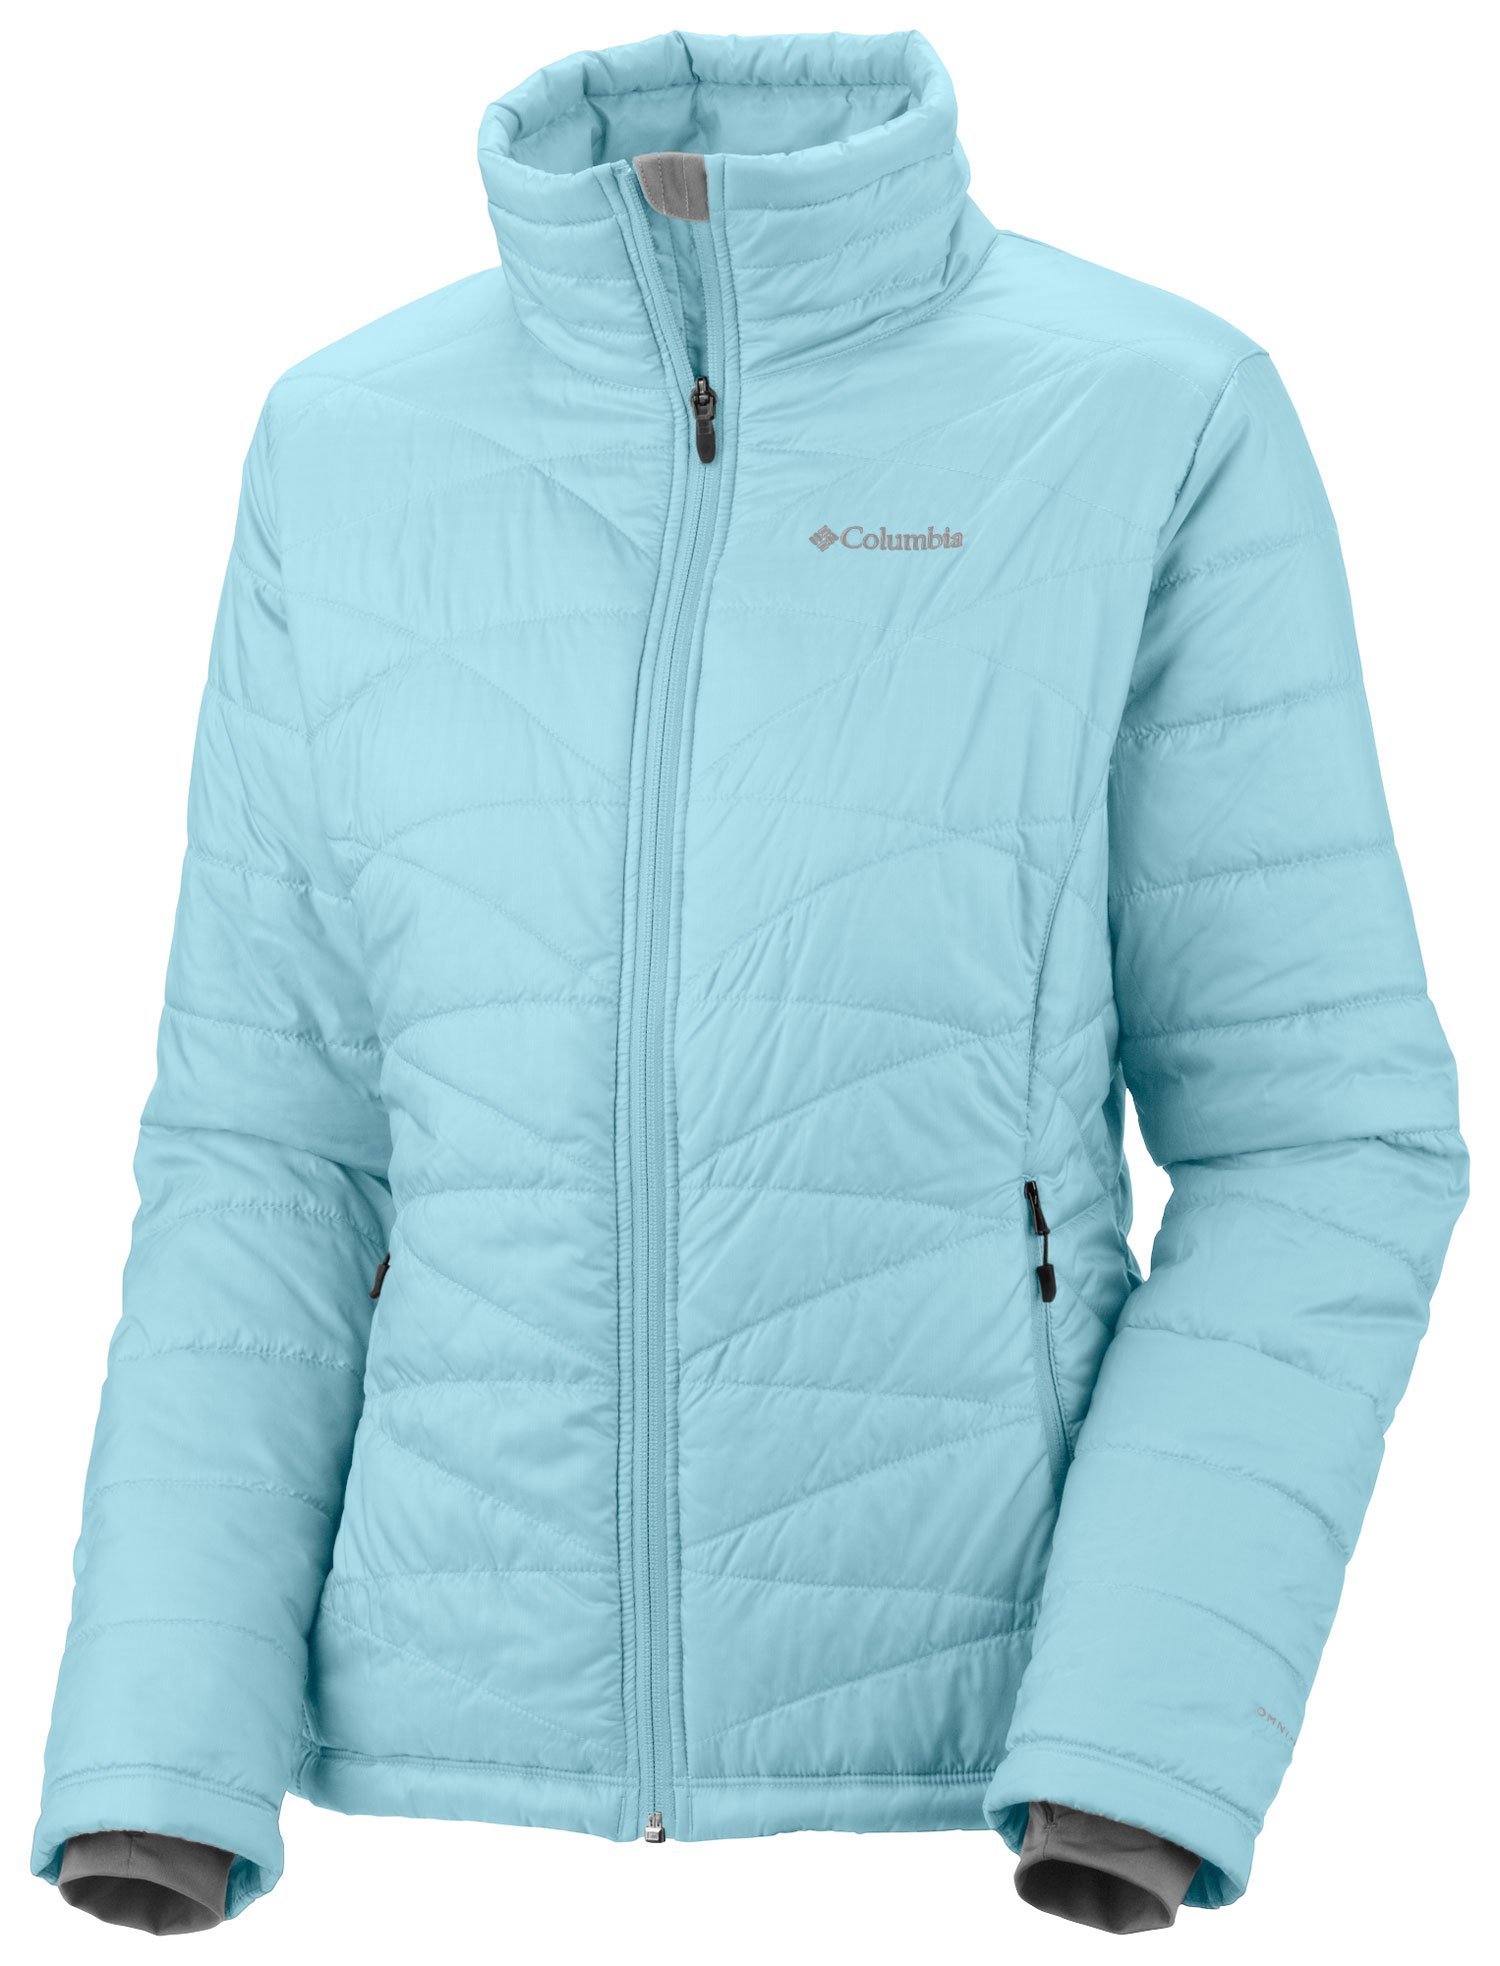 Key Features of the Columbia Mighty Lite III Jacket: FABRIC Shell: 100% polyester Windowpane Triple ripstop. Lining: 100% polyester Thermal Reflective. Insulation: 50% polyester/50% recycled polyester OH, 80g. FIT Active Omni-Heat™ thermal reflective and insulated Omni-Shield™ advanced repellency Drawcord adjustable hem Interior security pocket Zip-closed pockets Comfort cuffs Thumb holes - $87.95